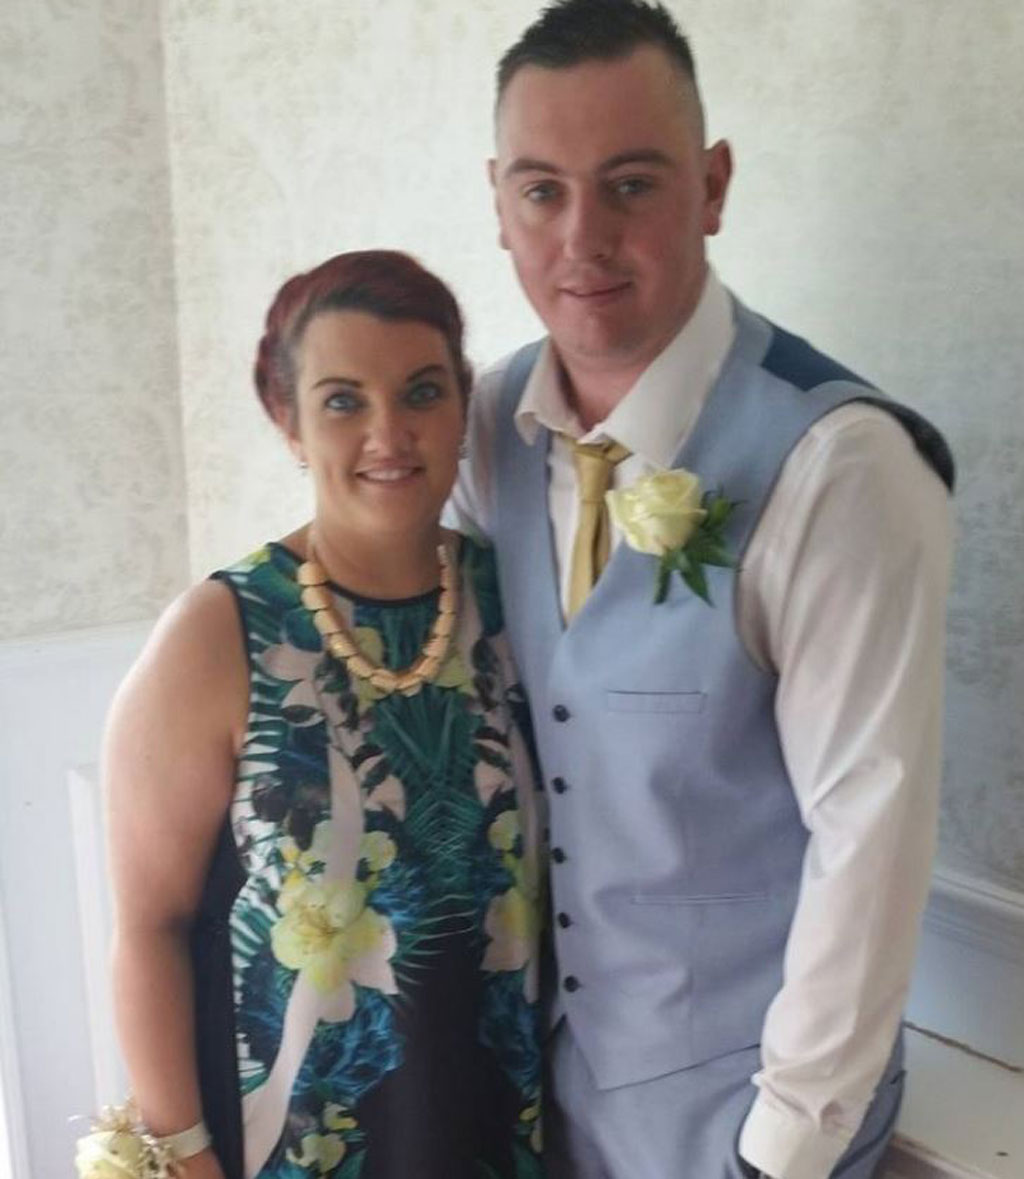 Bride 'cons fiance and his friends out of £13000 stag fund'